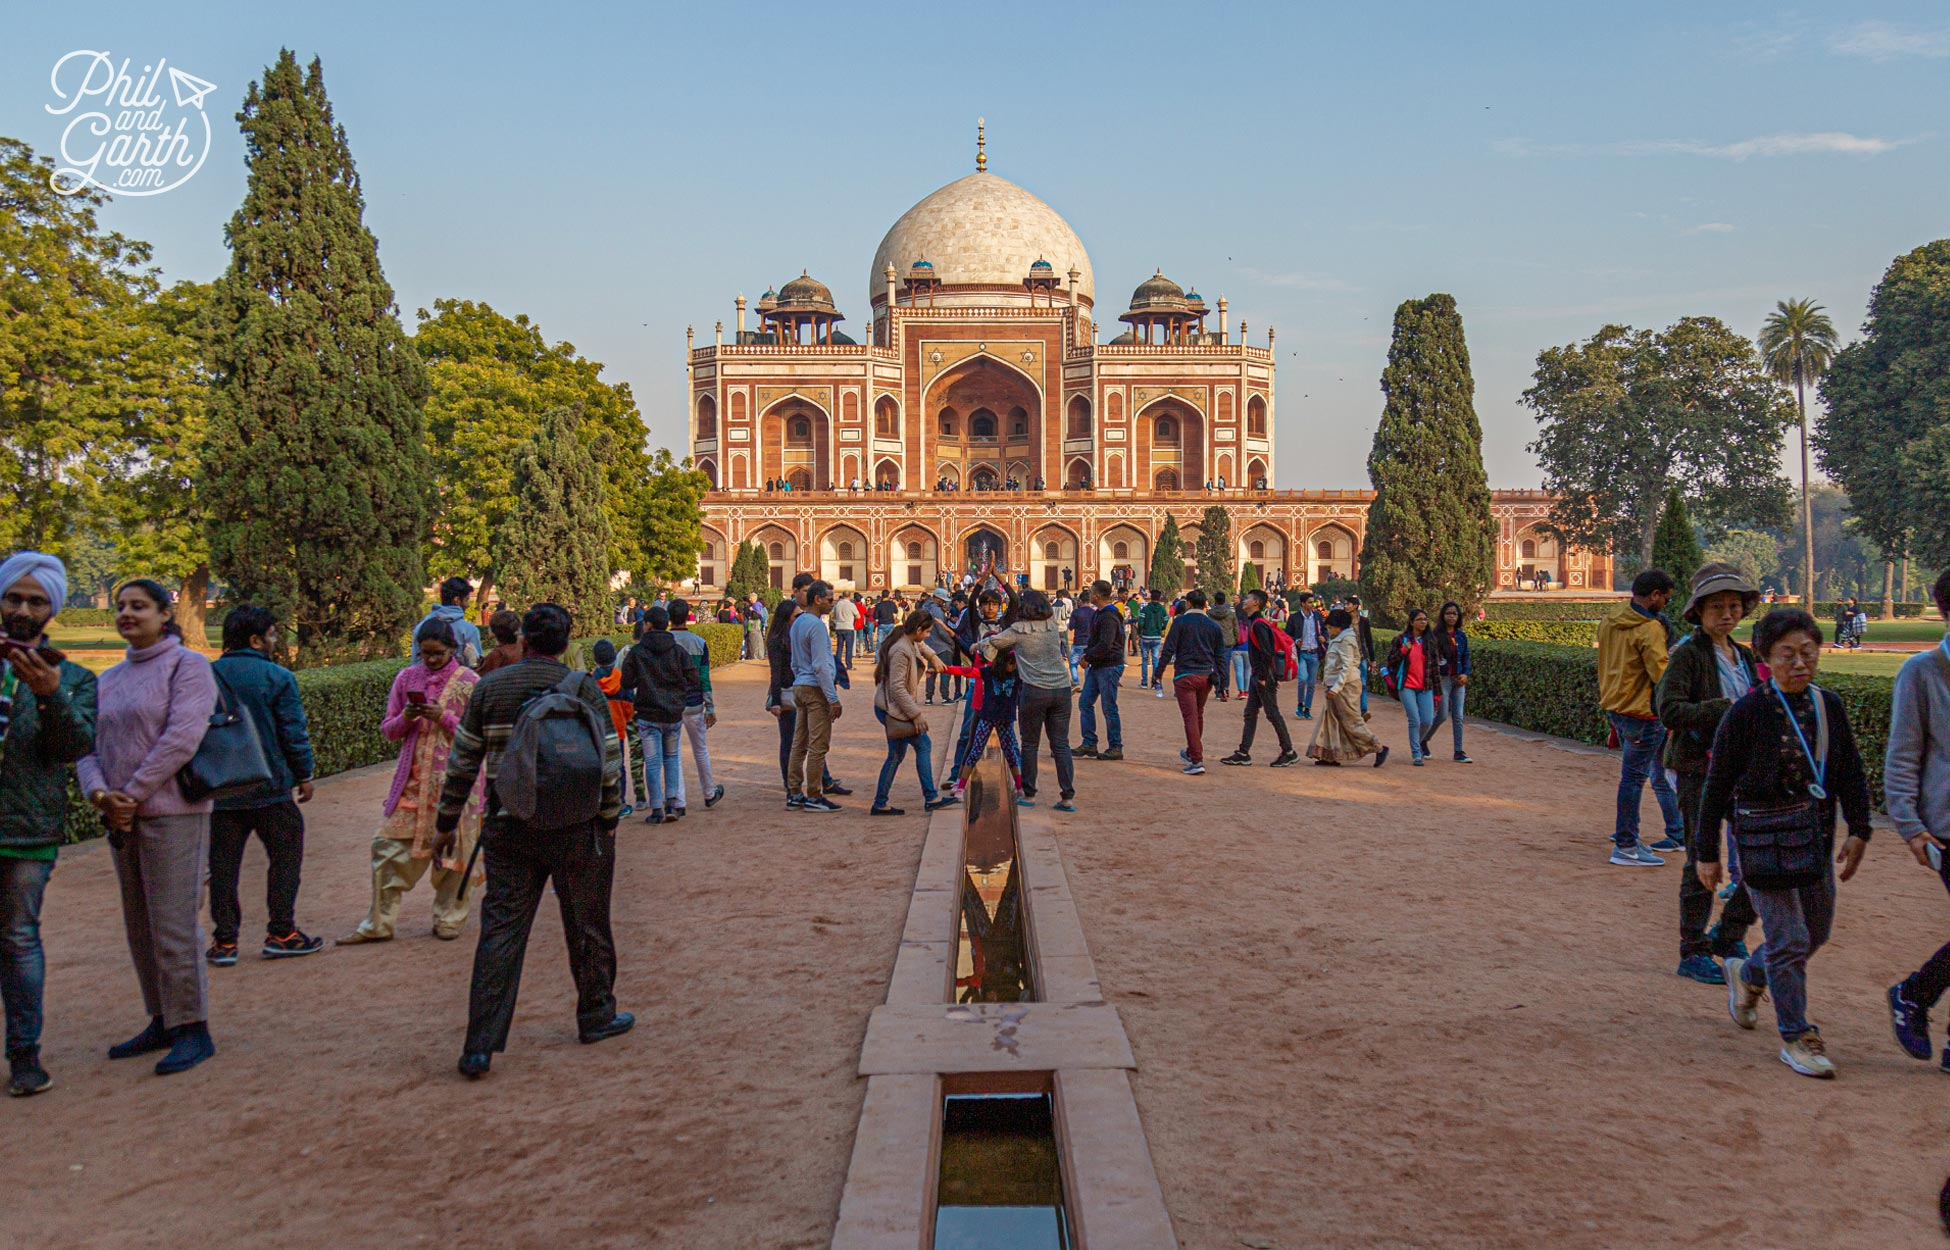 The classic view of Humayun's Tomb as seen from the entrance